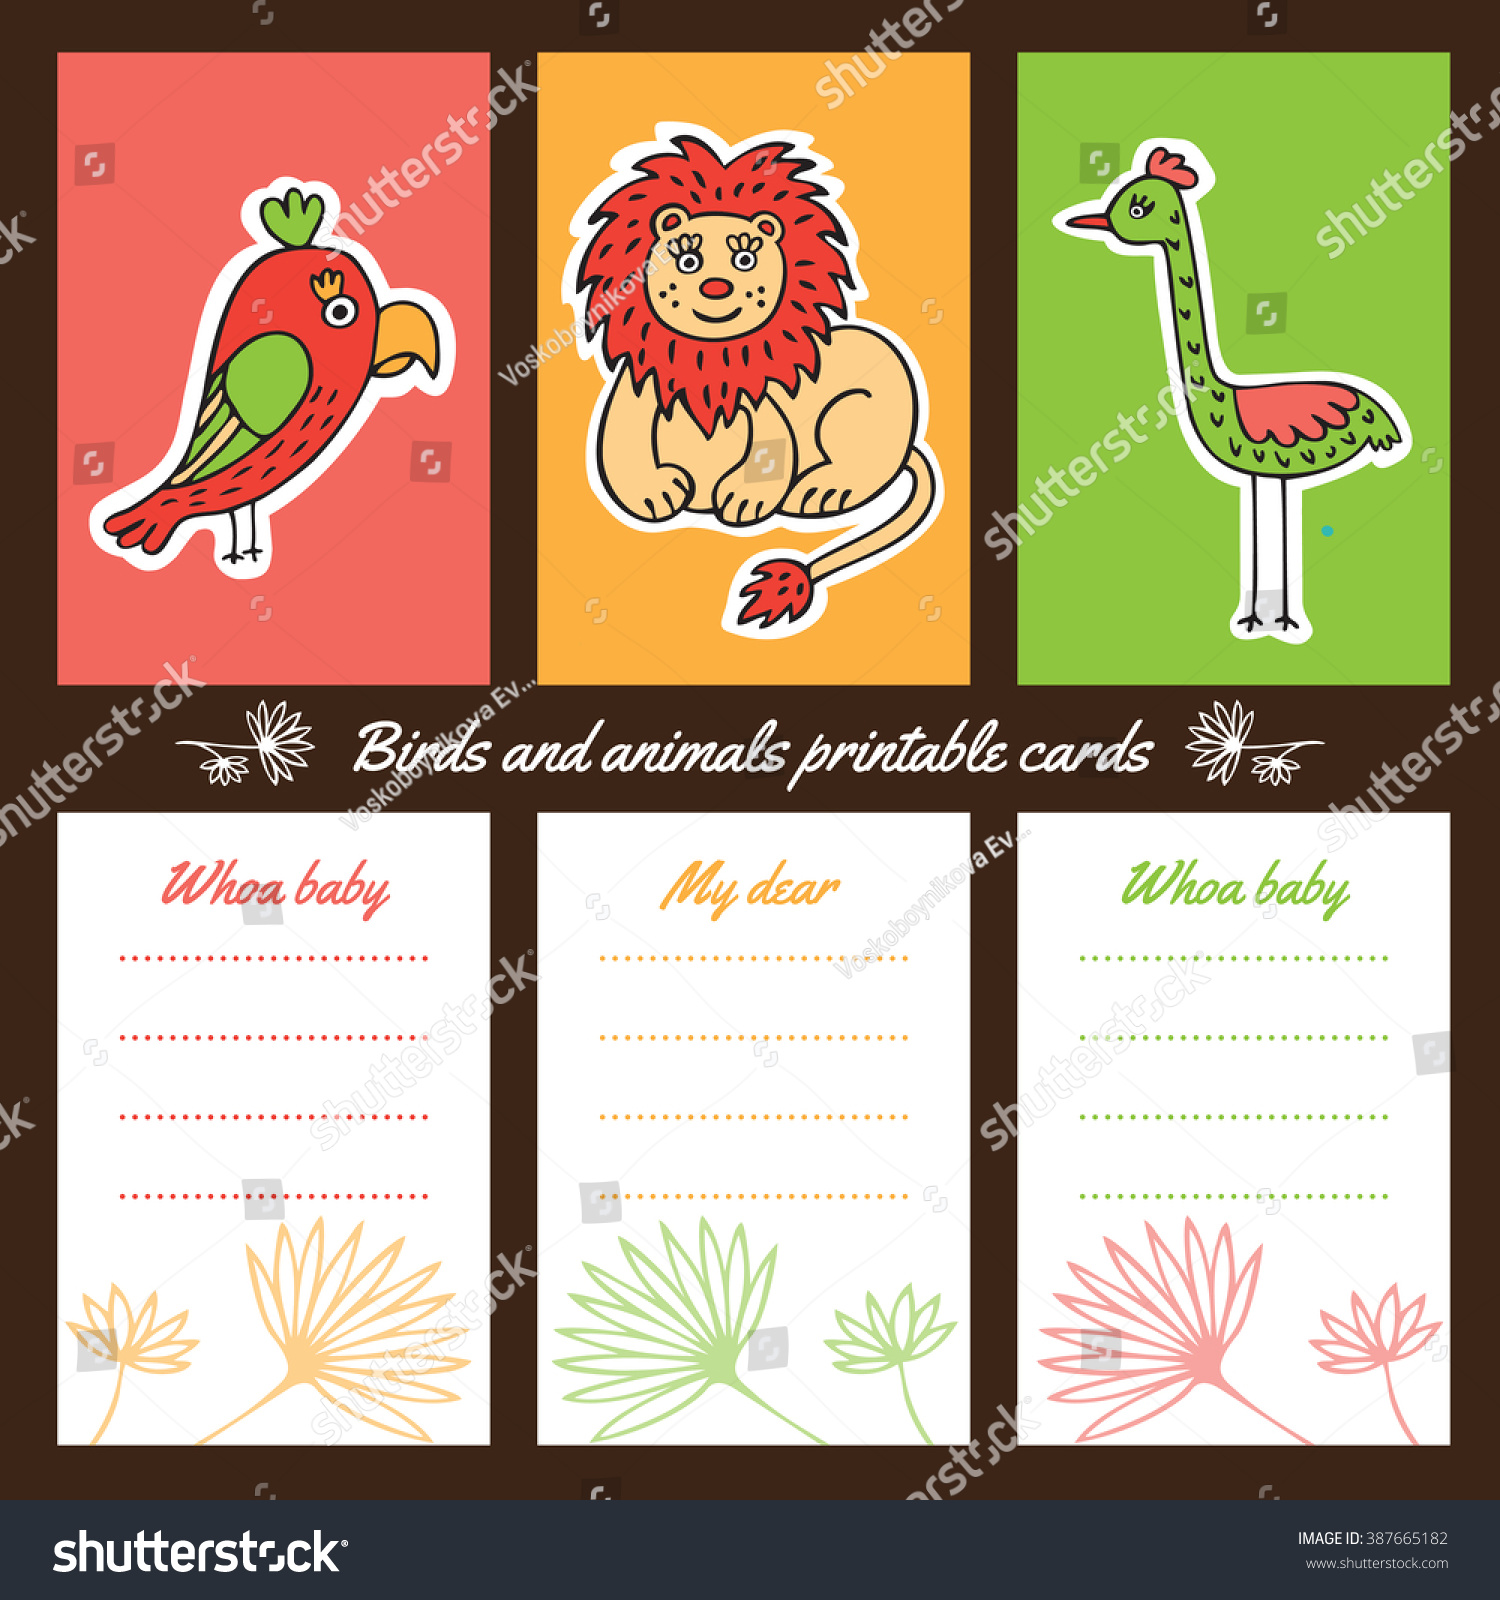 A Set Of Brightly Colored Cards To Print Animals And Birds Painted In The Style